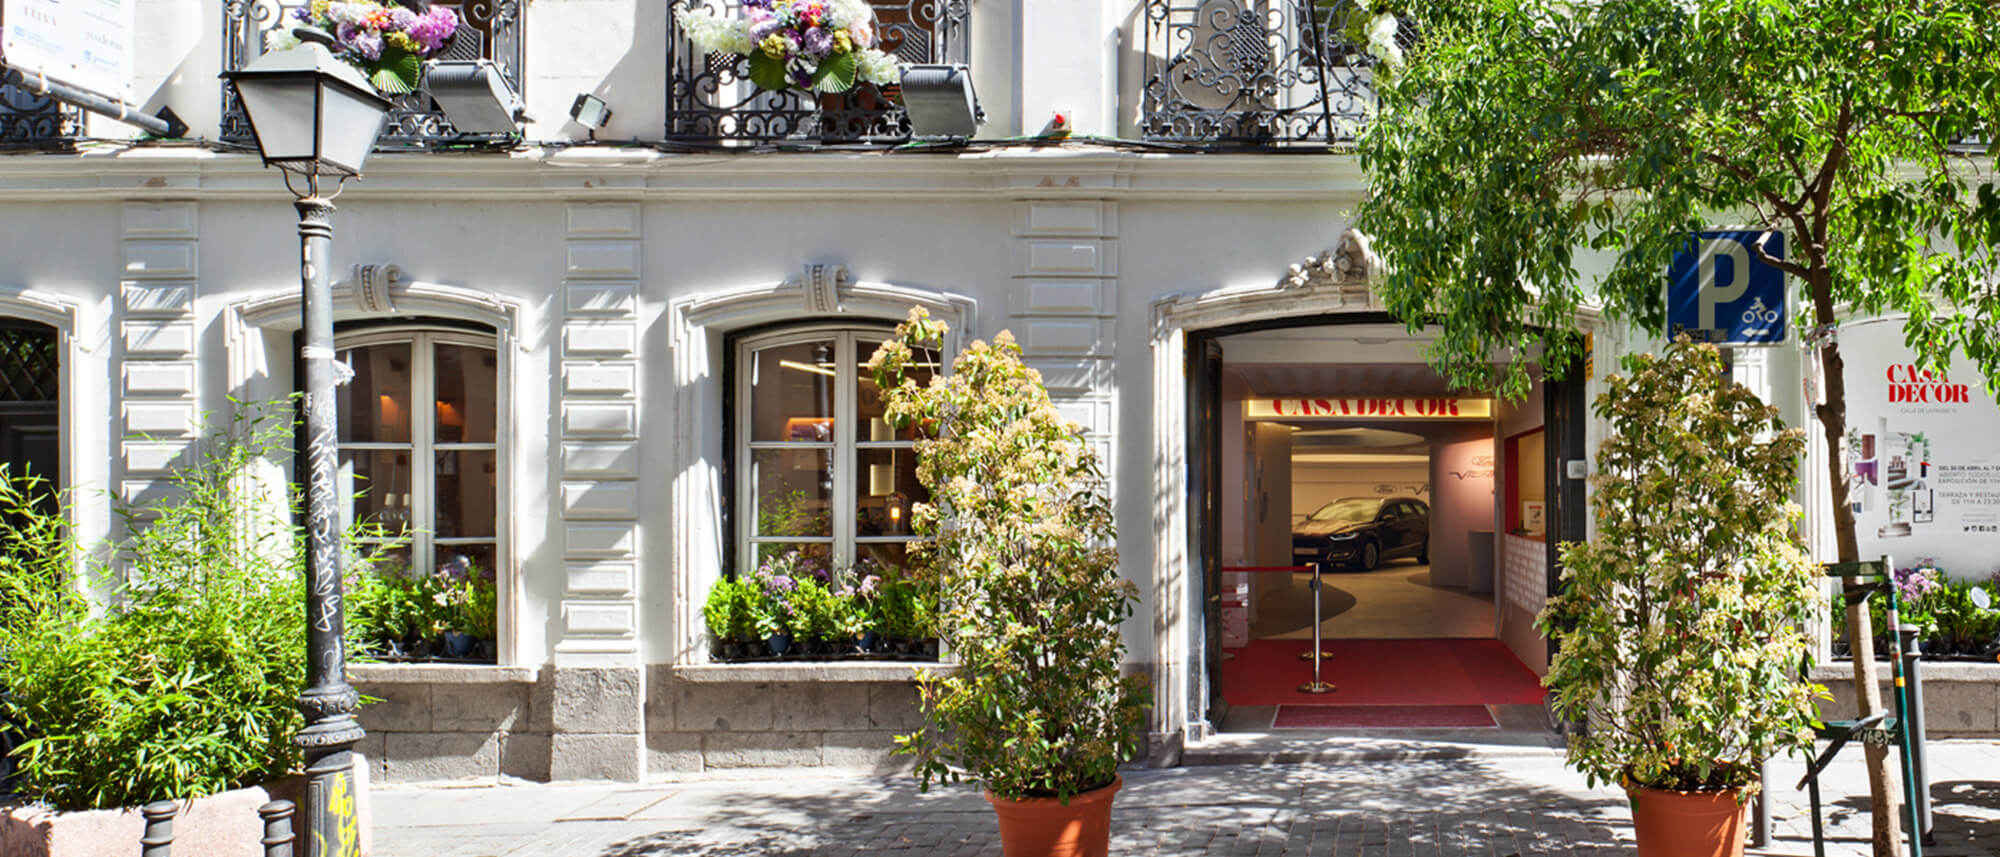 Madrid 2015 50 edici n casadecor - Minicasas madrid ...